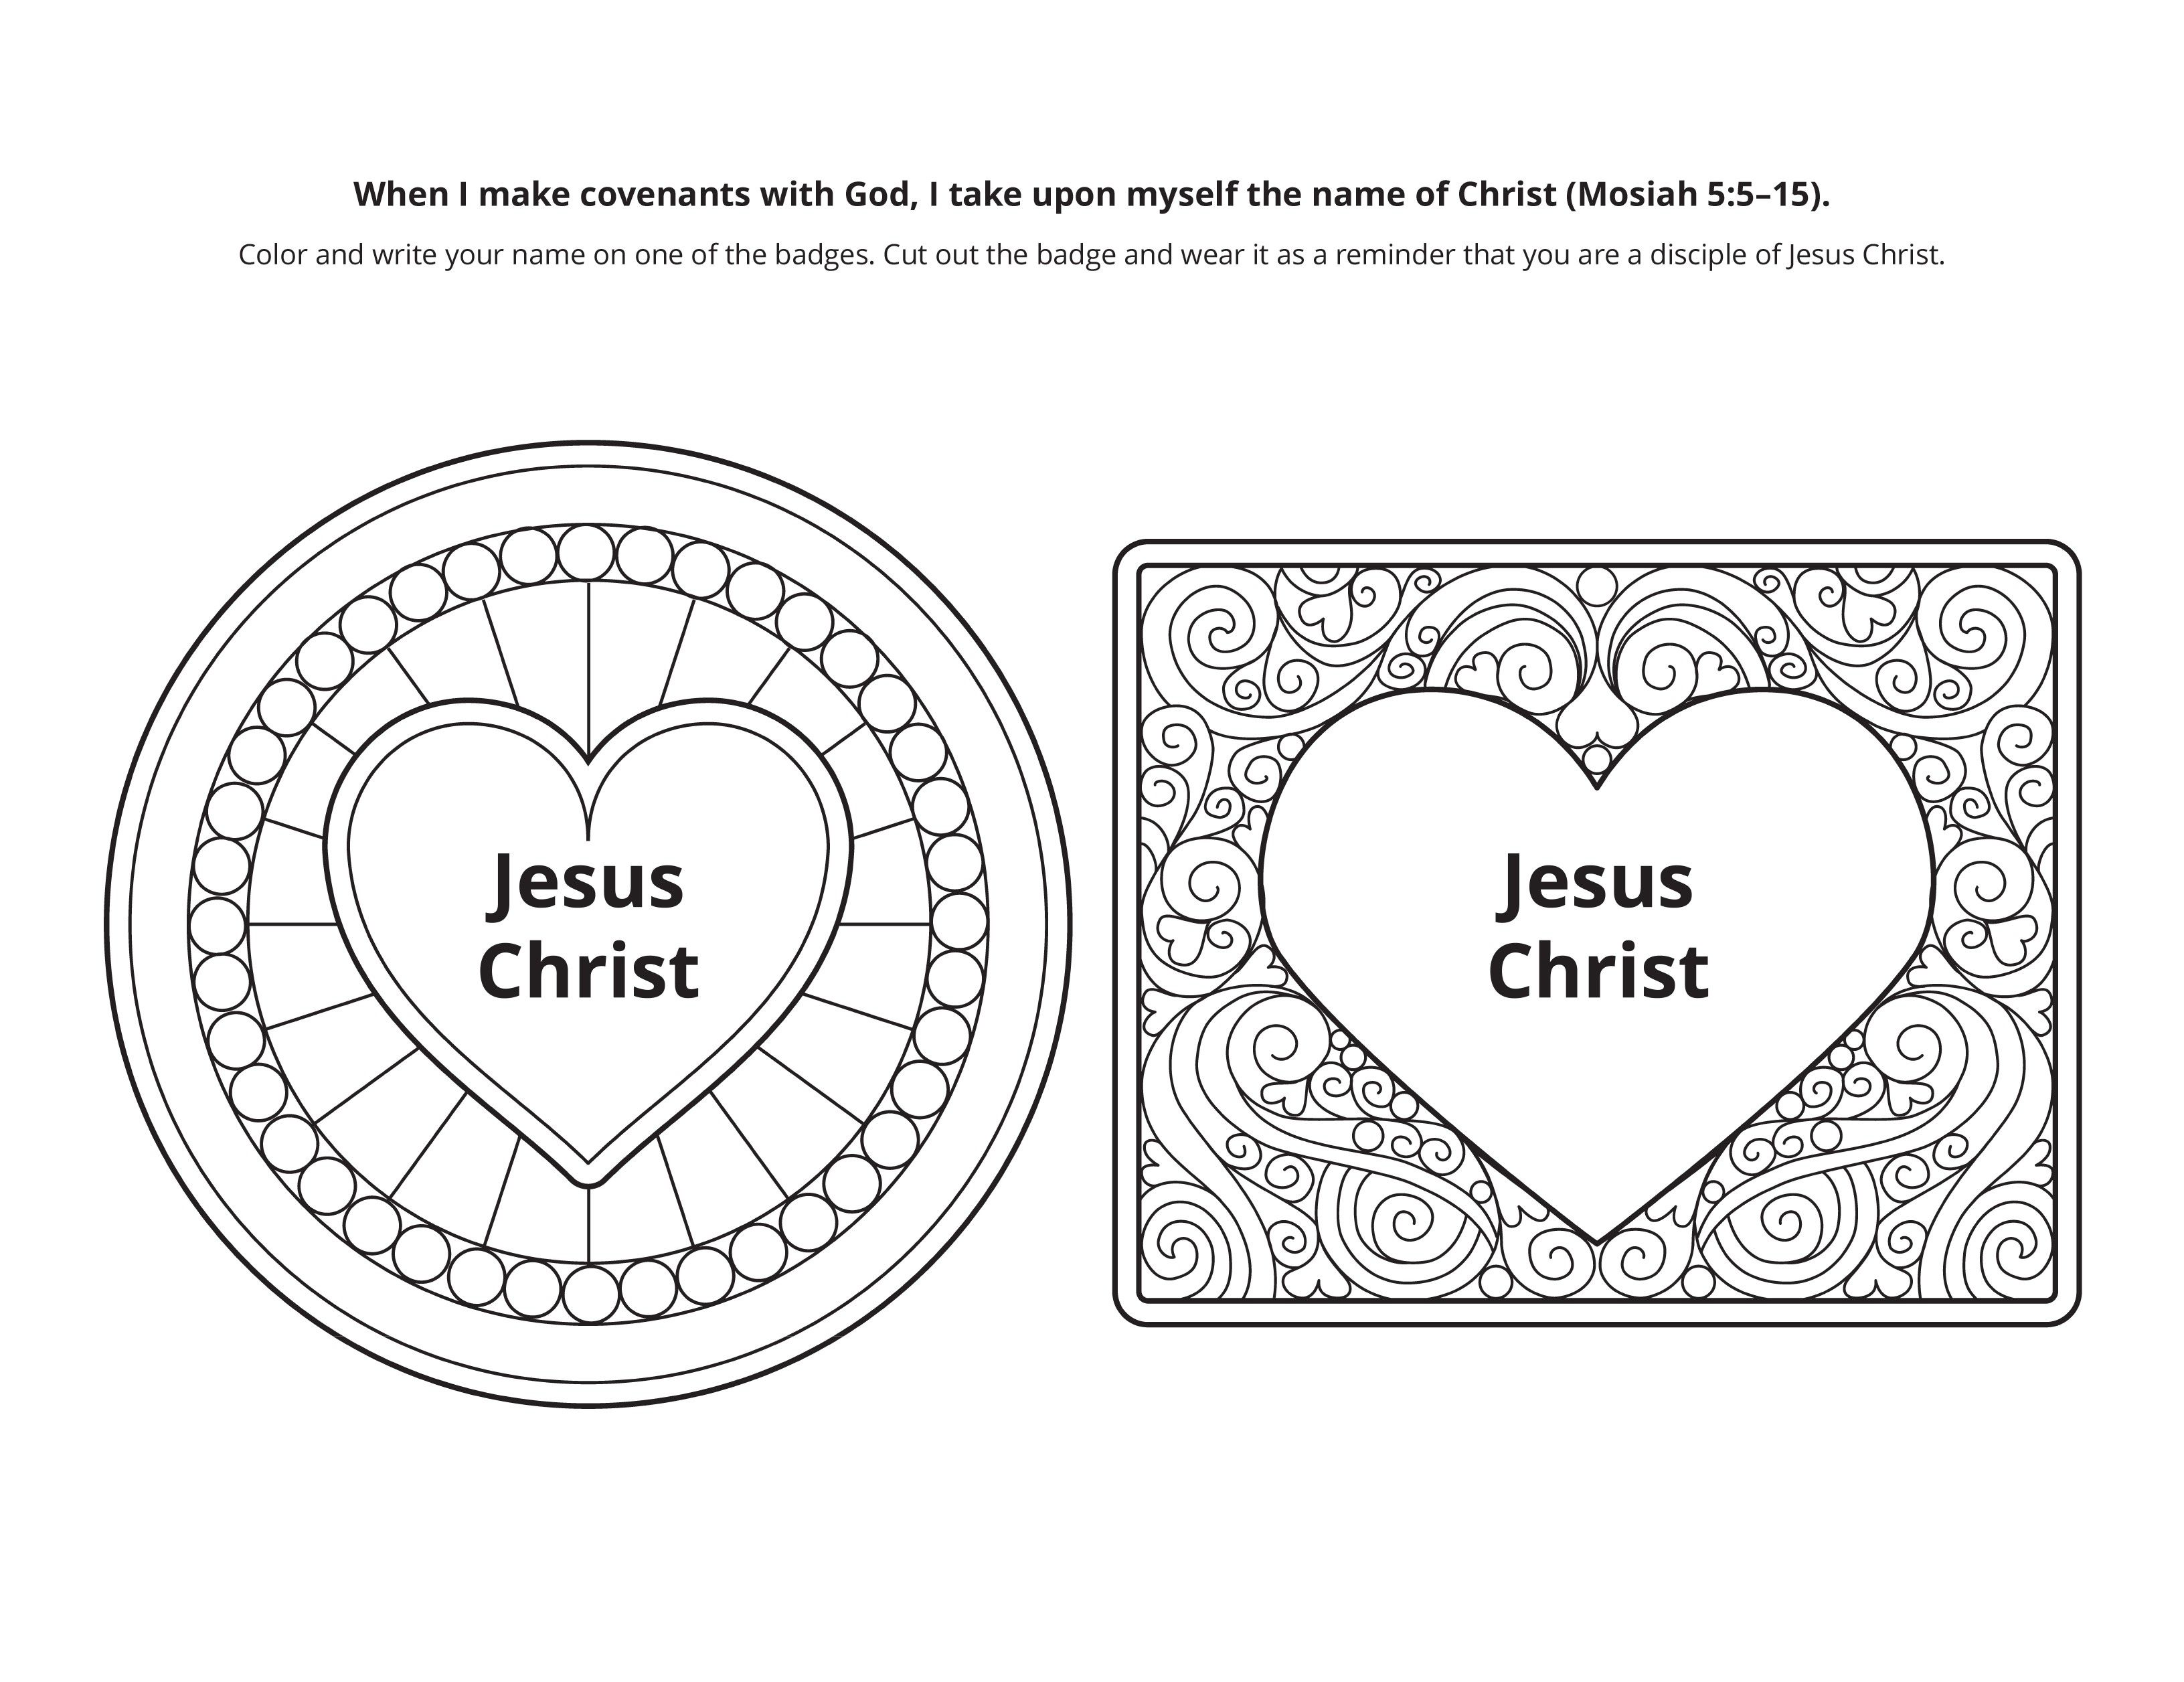 Line art of a heart, representing covenants with Christ.